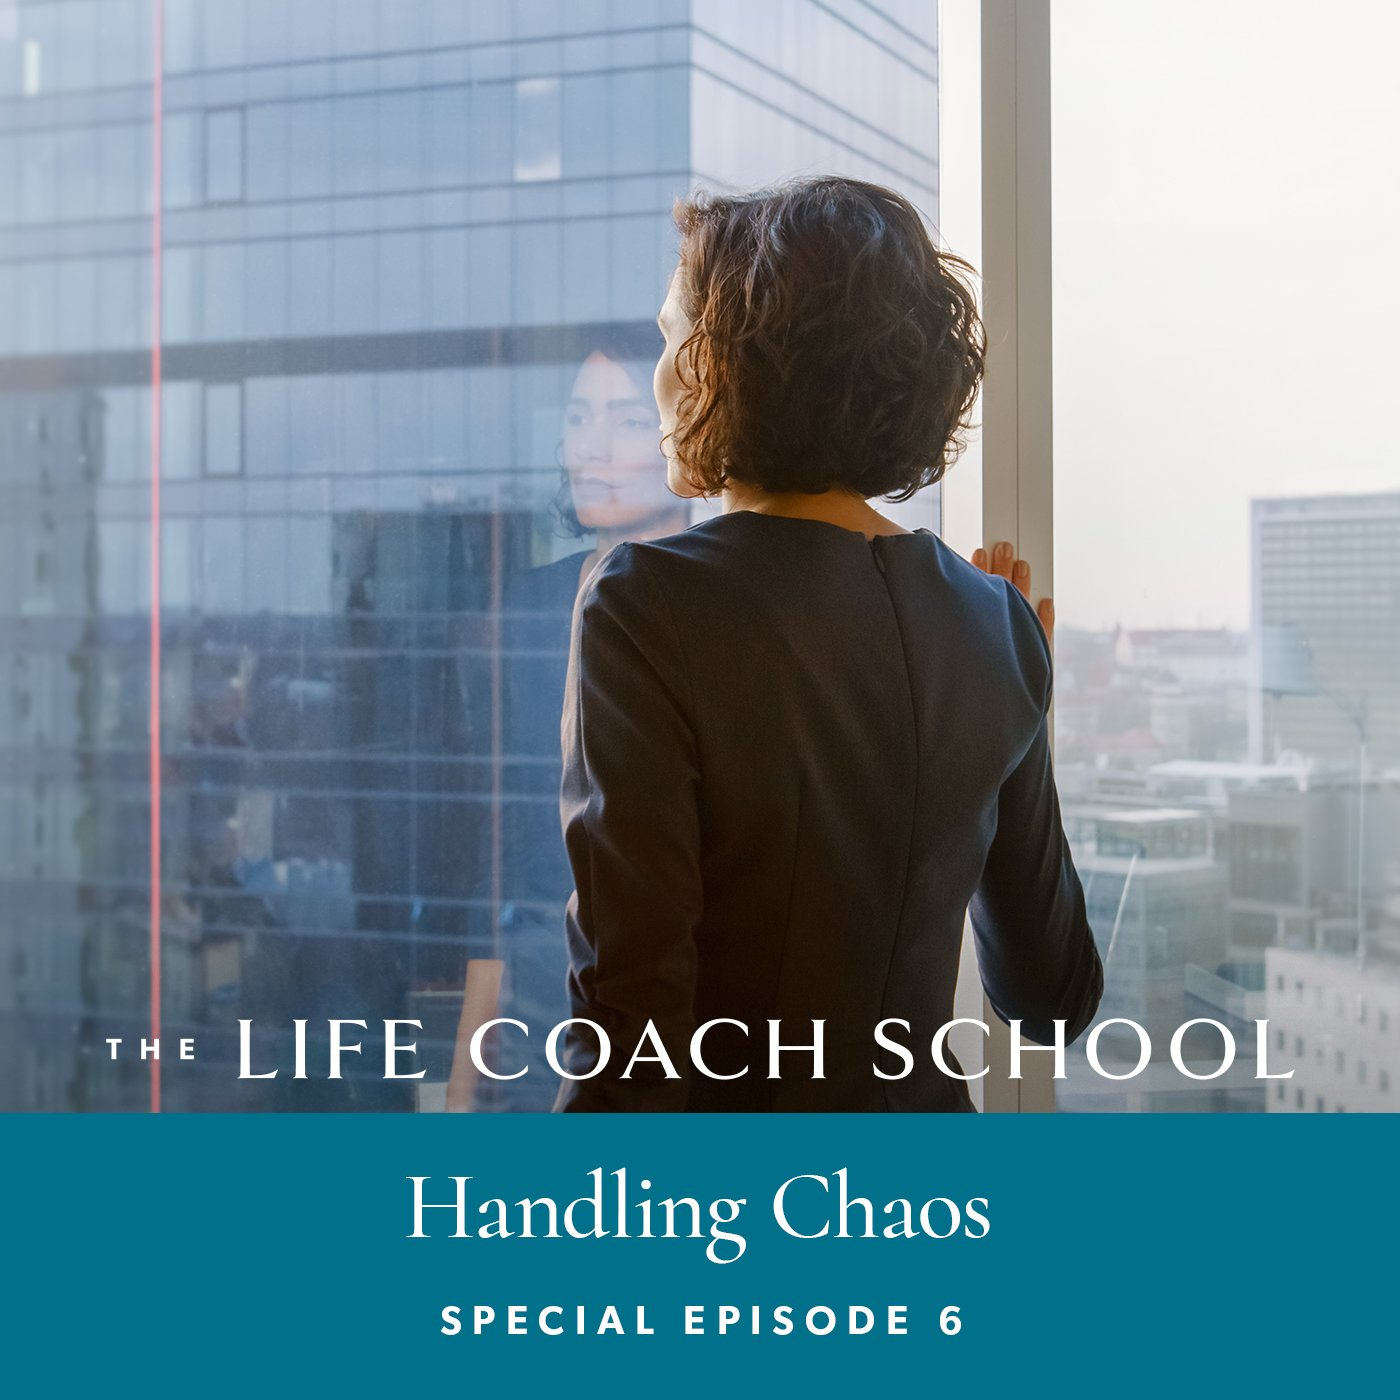 The Life Coach School Podcast with Brooke Castillo | Special Episode | Handling Chaos 6